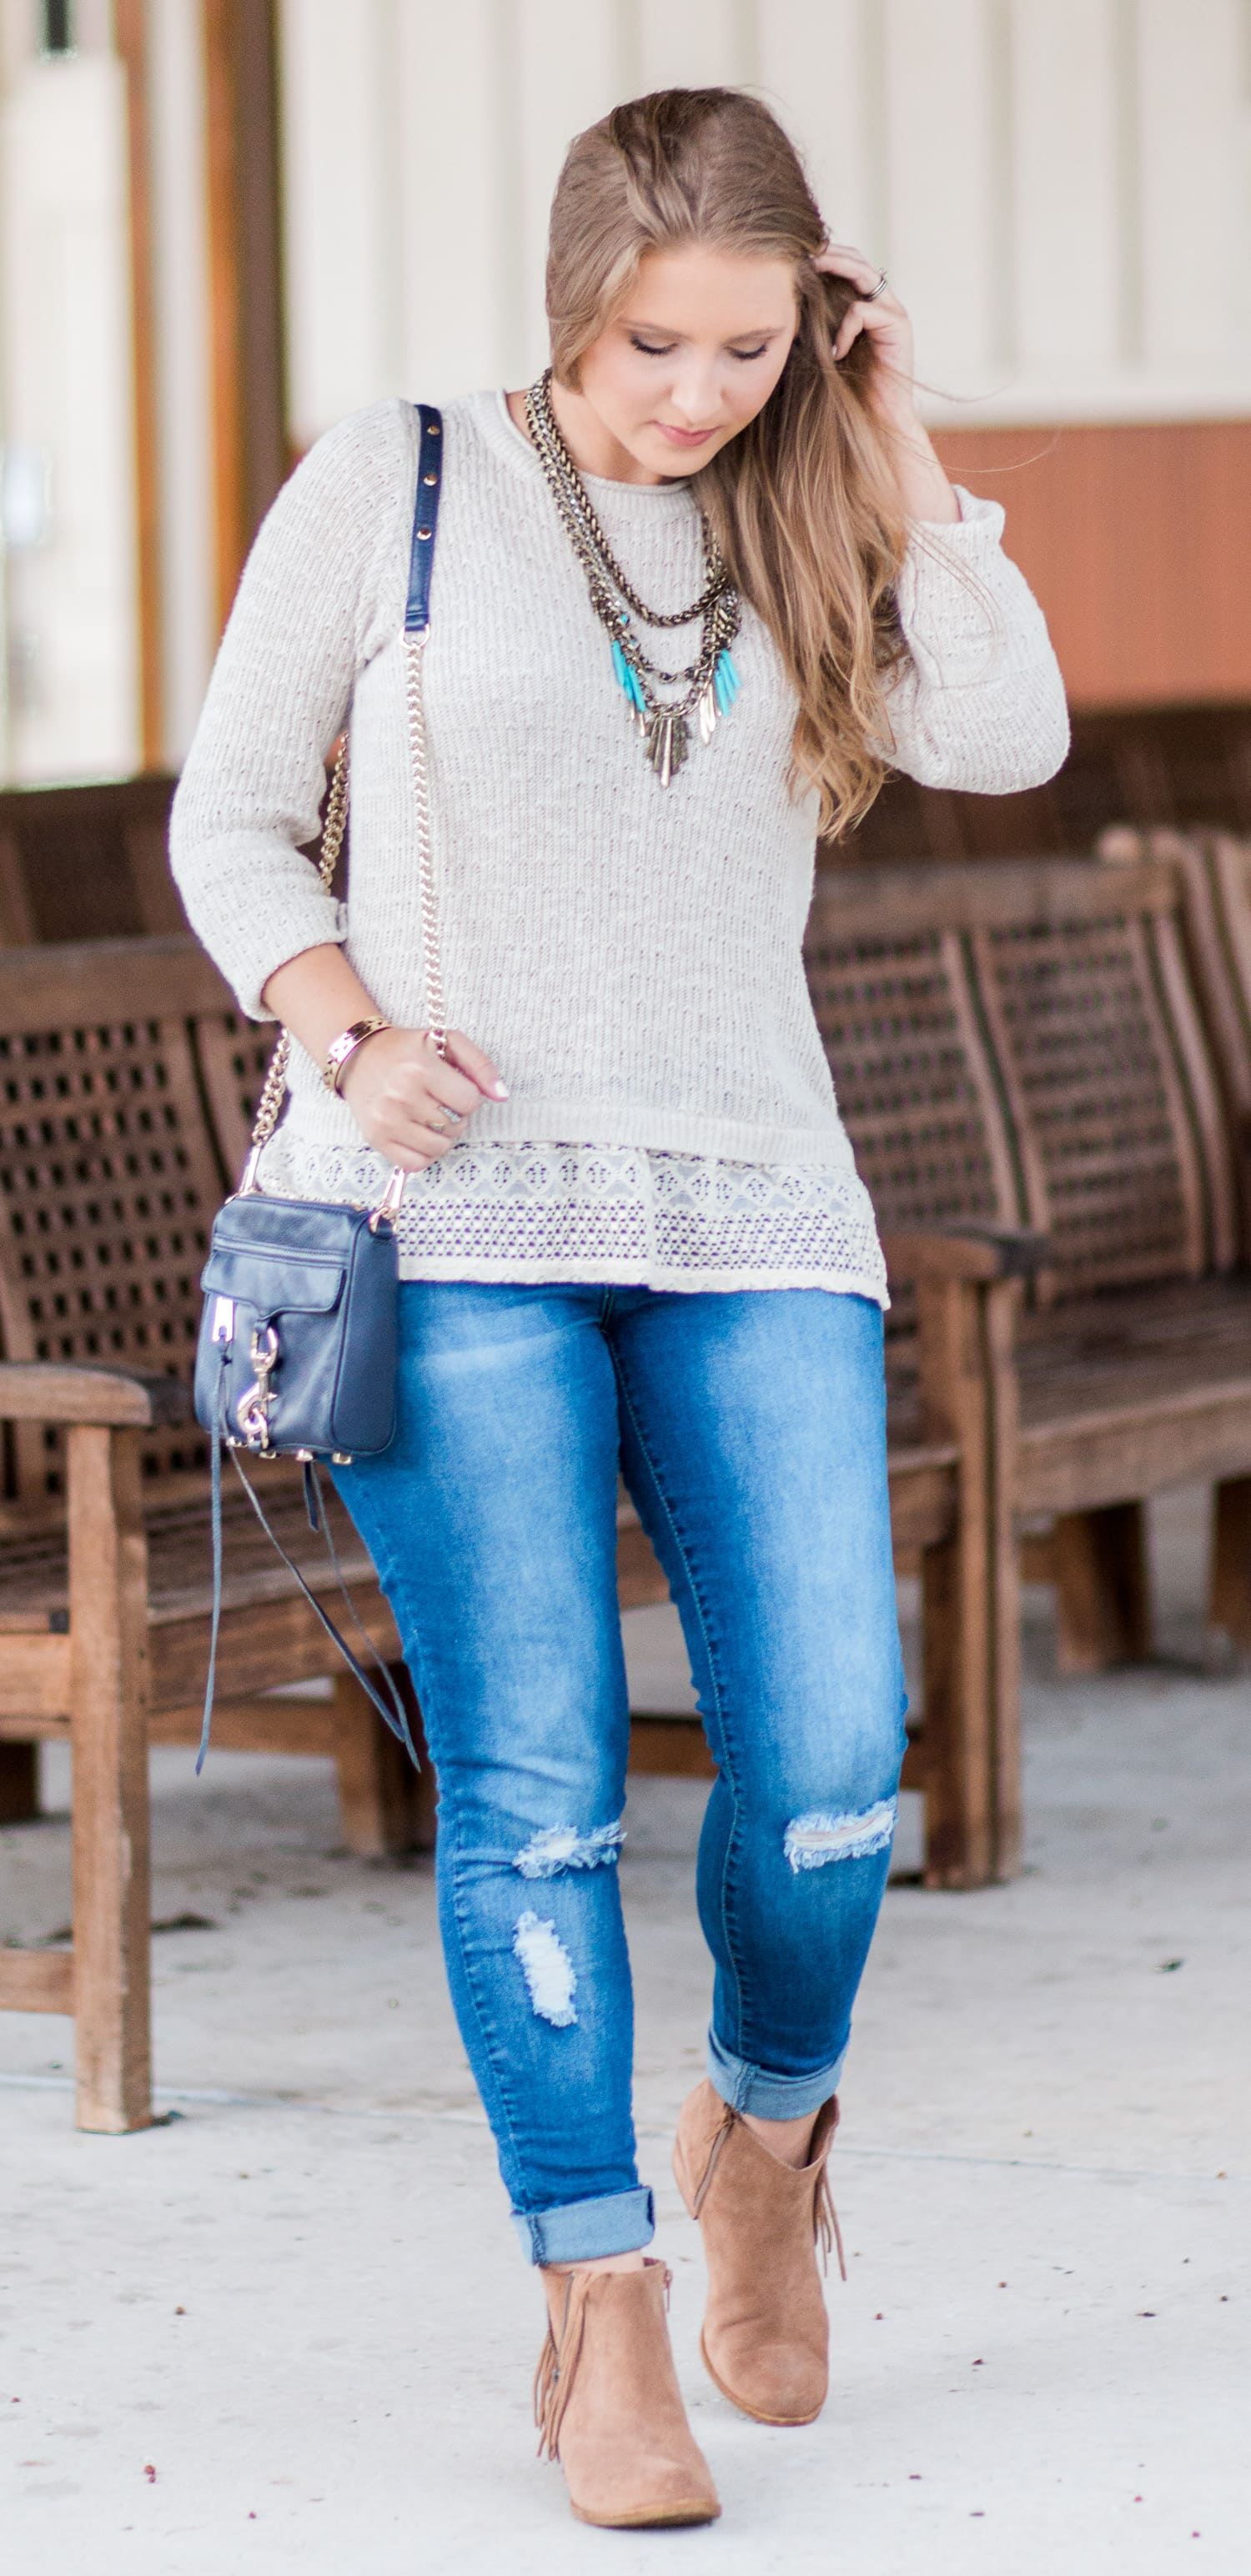 Cream sweater with lace ruffle, destroyed denim jeans, navy crossbody bag, antiqued gold and turquoise statement necklace, and Lucky Brand Beeliner fringe booties styled by blogger Ashley Brooke Nicholas. Click through this pin to see this cute fall outfit idea + learn where to buy each item.